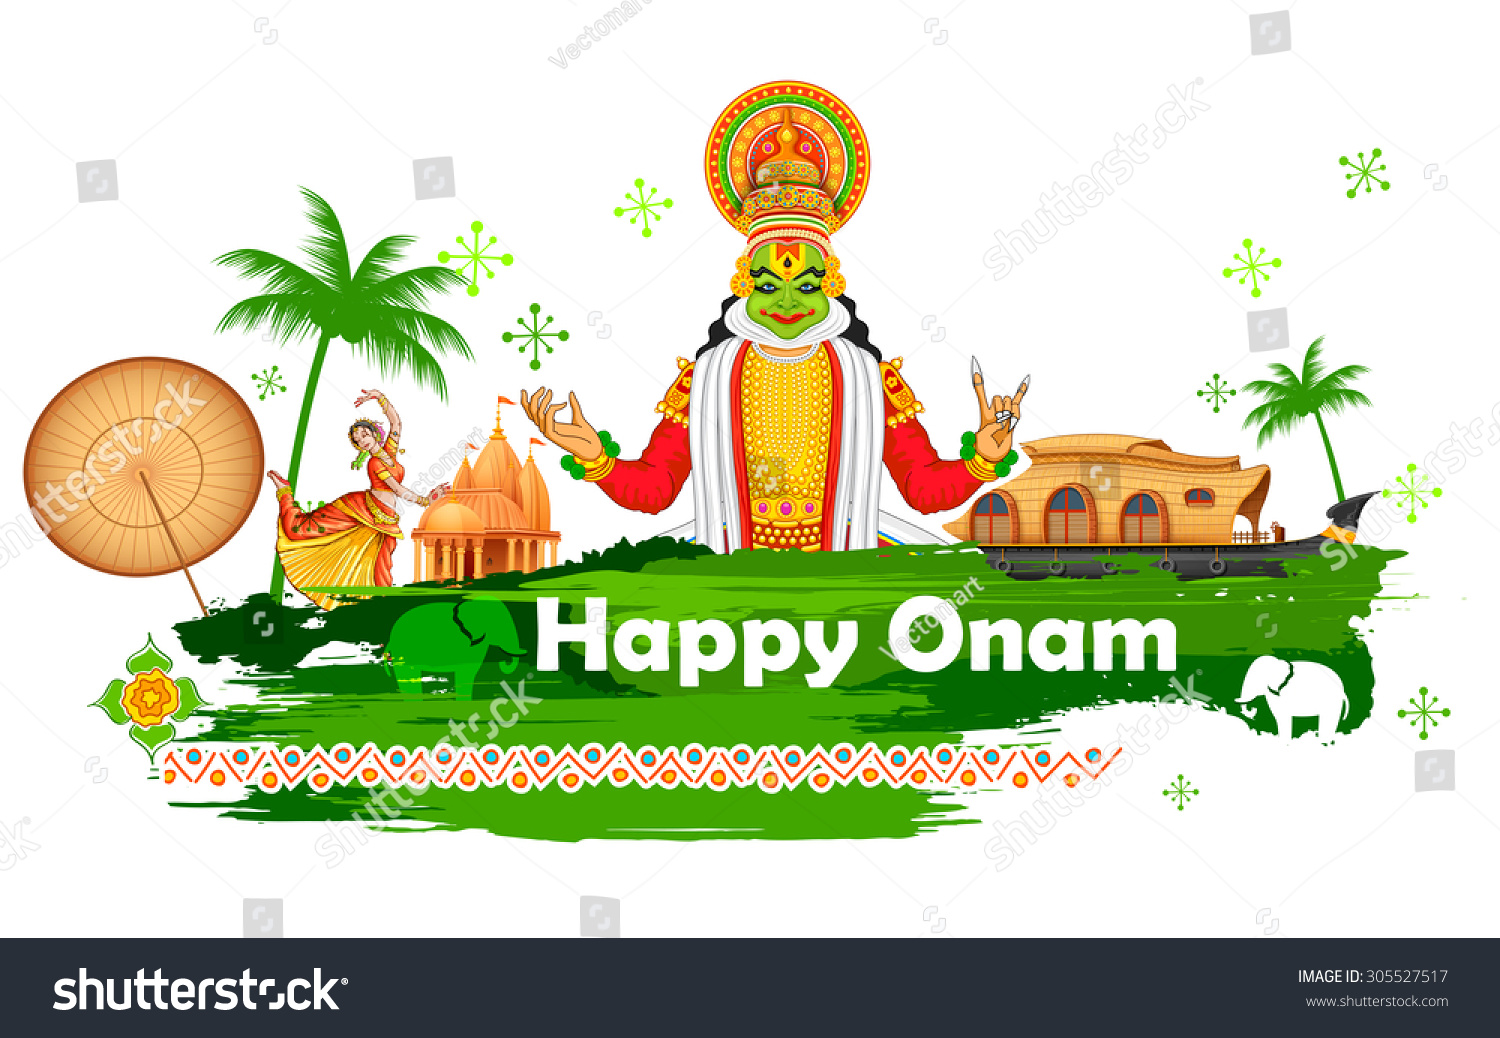 Flower Decoration For Onam Festival Kerala India Stock Auto York Wiring Schematics Model E1rc036s06d Illustration Background Showing Culture